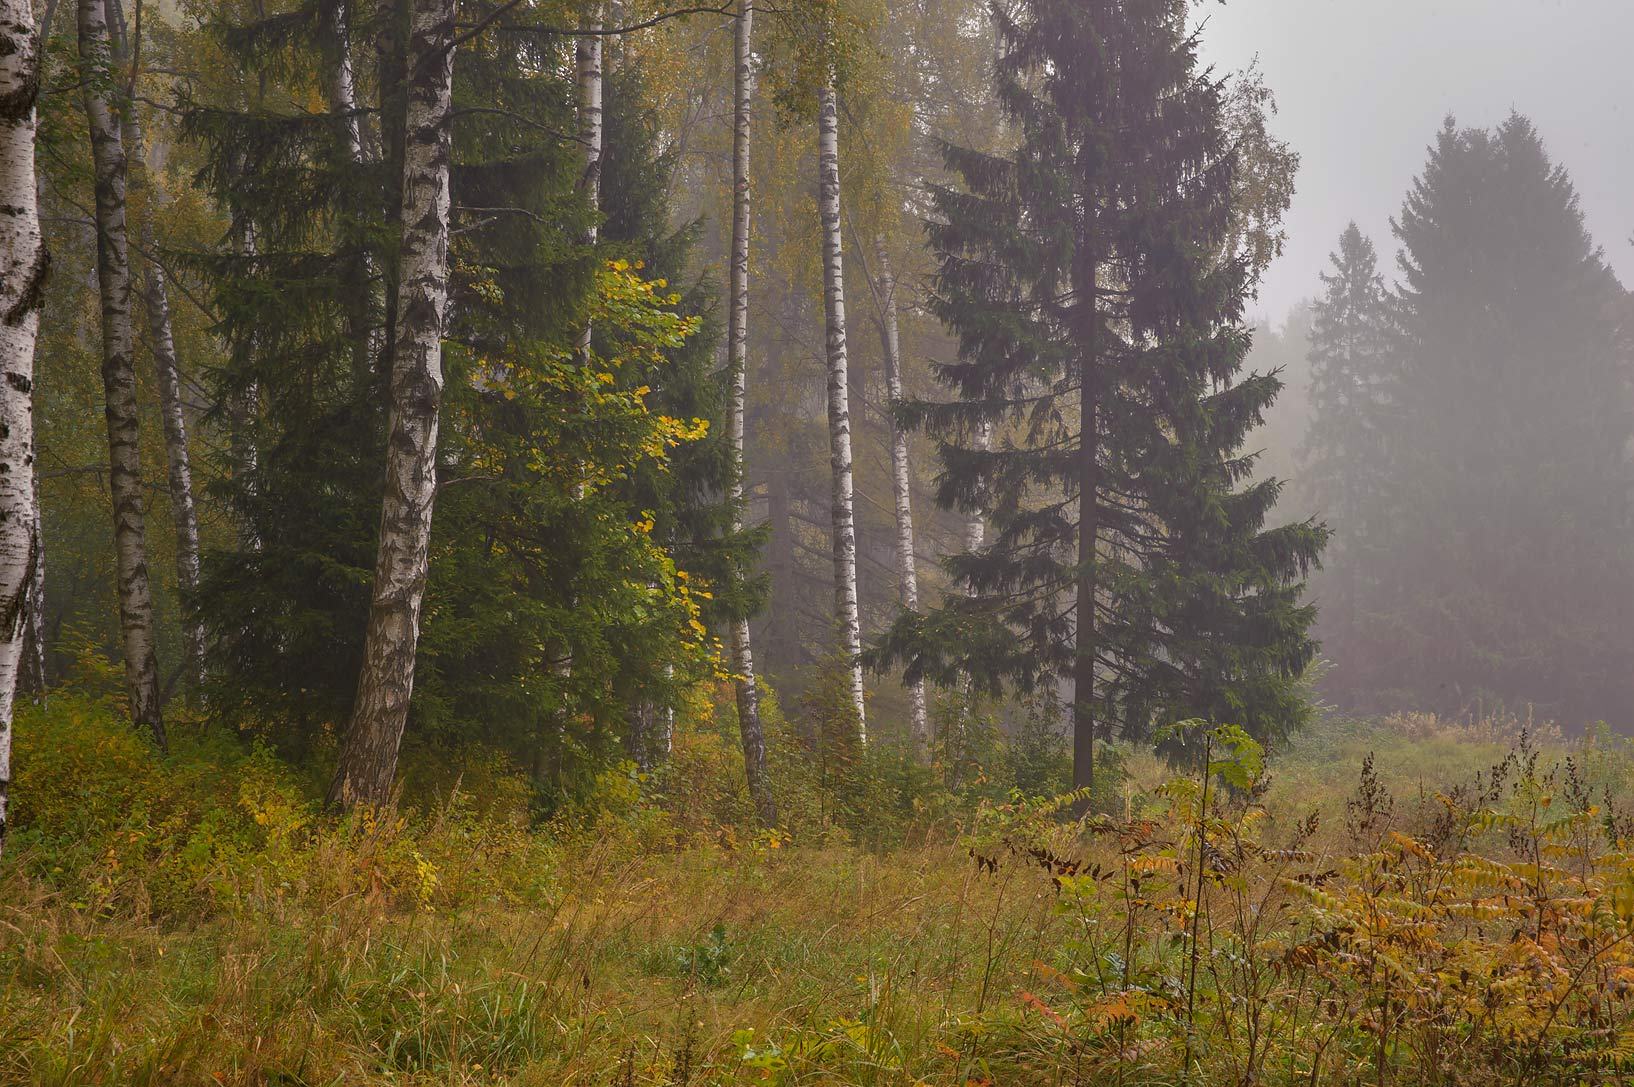 Forest in fog near Krasnogo Bugra (Solntsa) Alley...a suburb of St.Petersburg, Russia